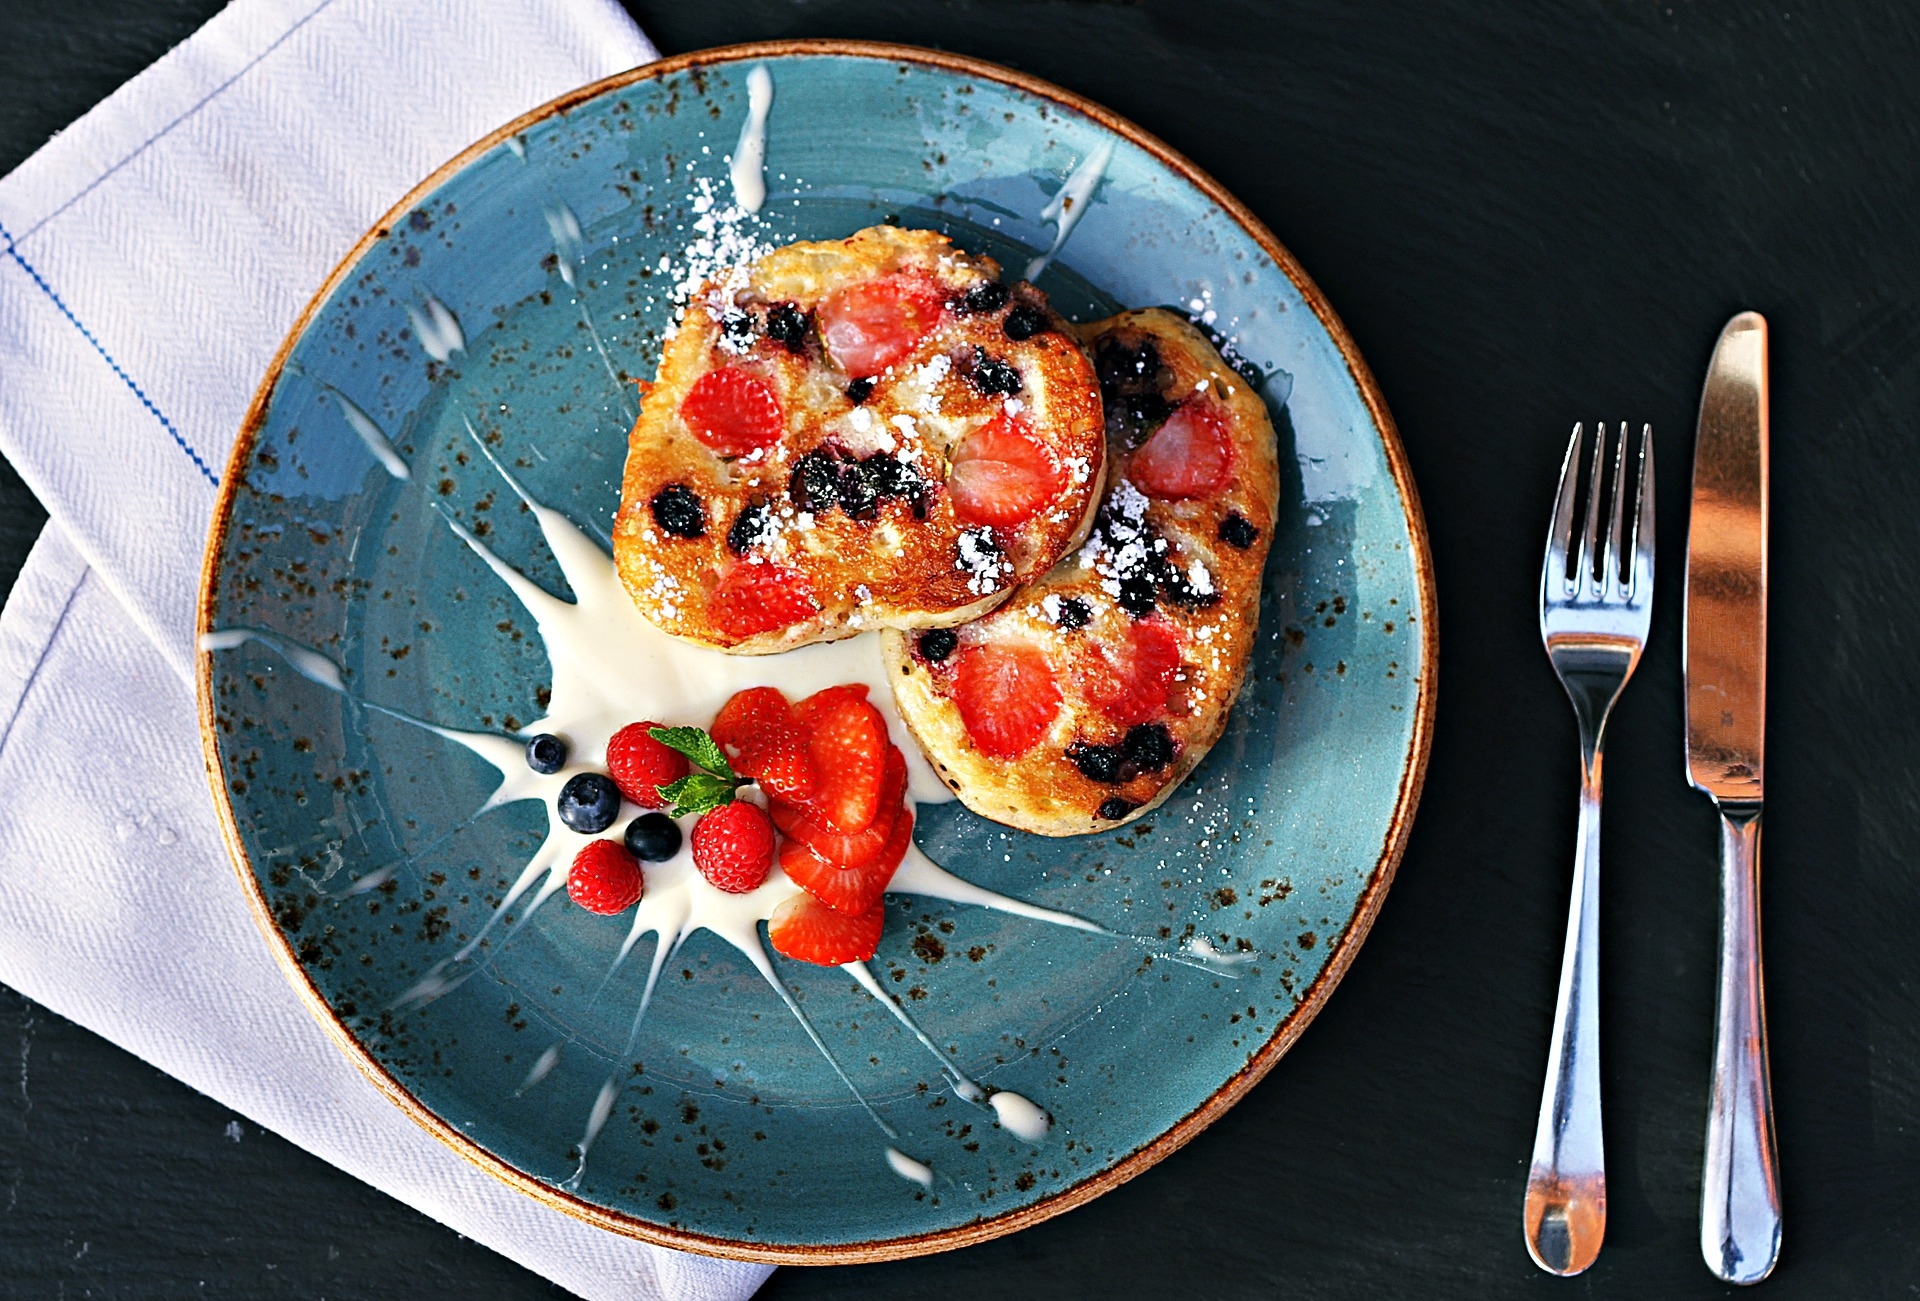 Strawberry and blueberry pancakes with cream